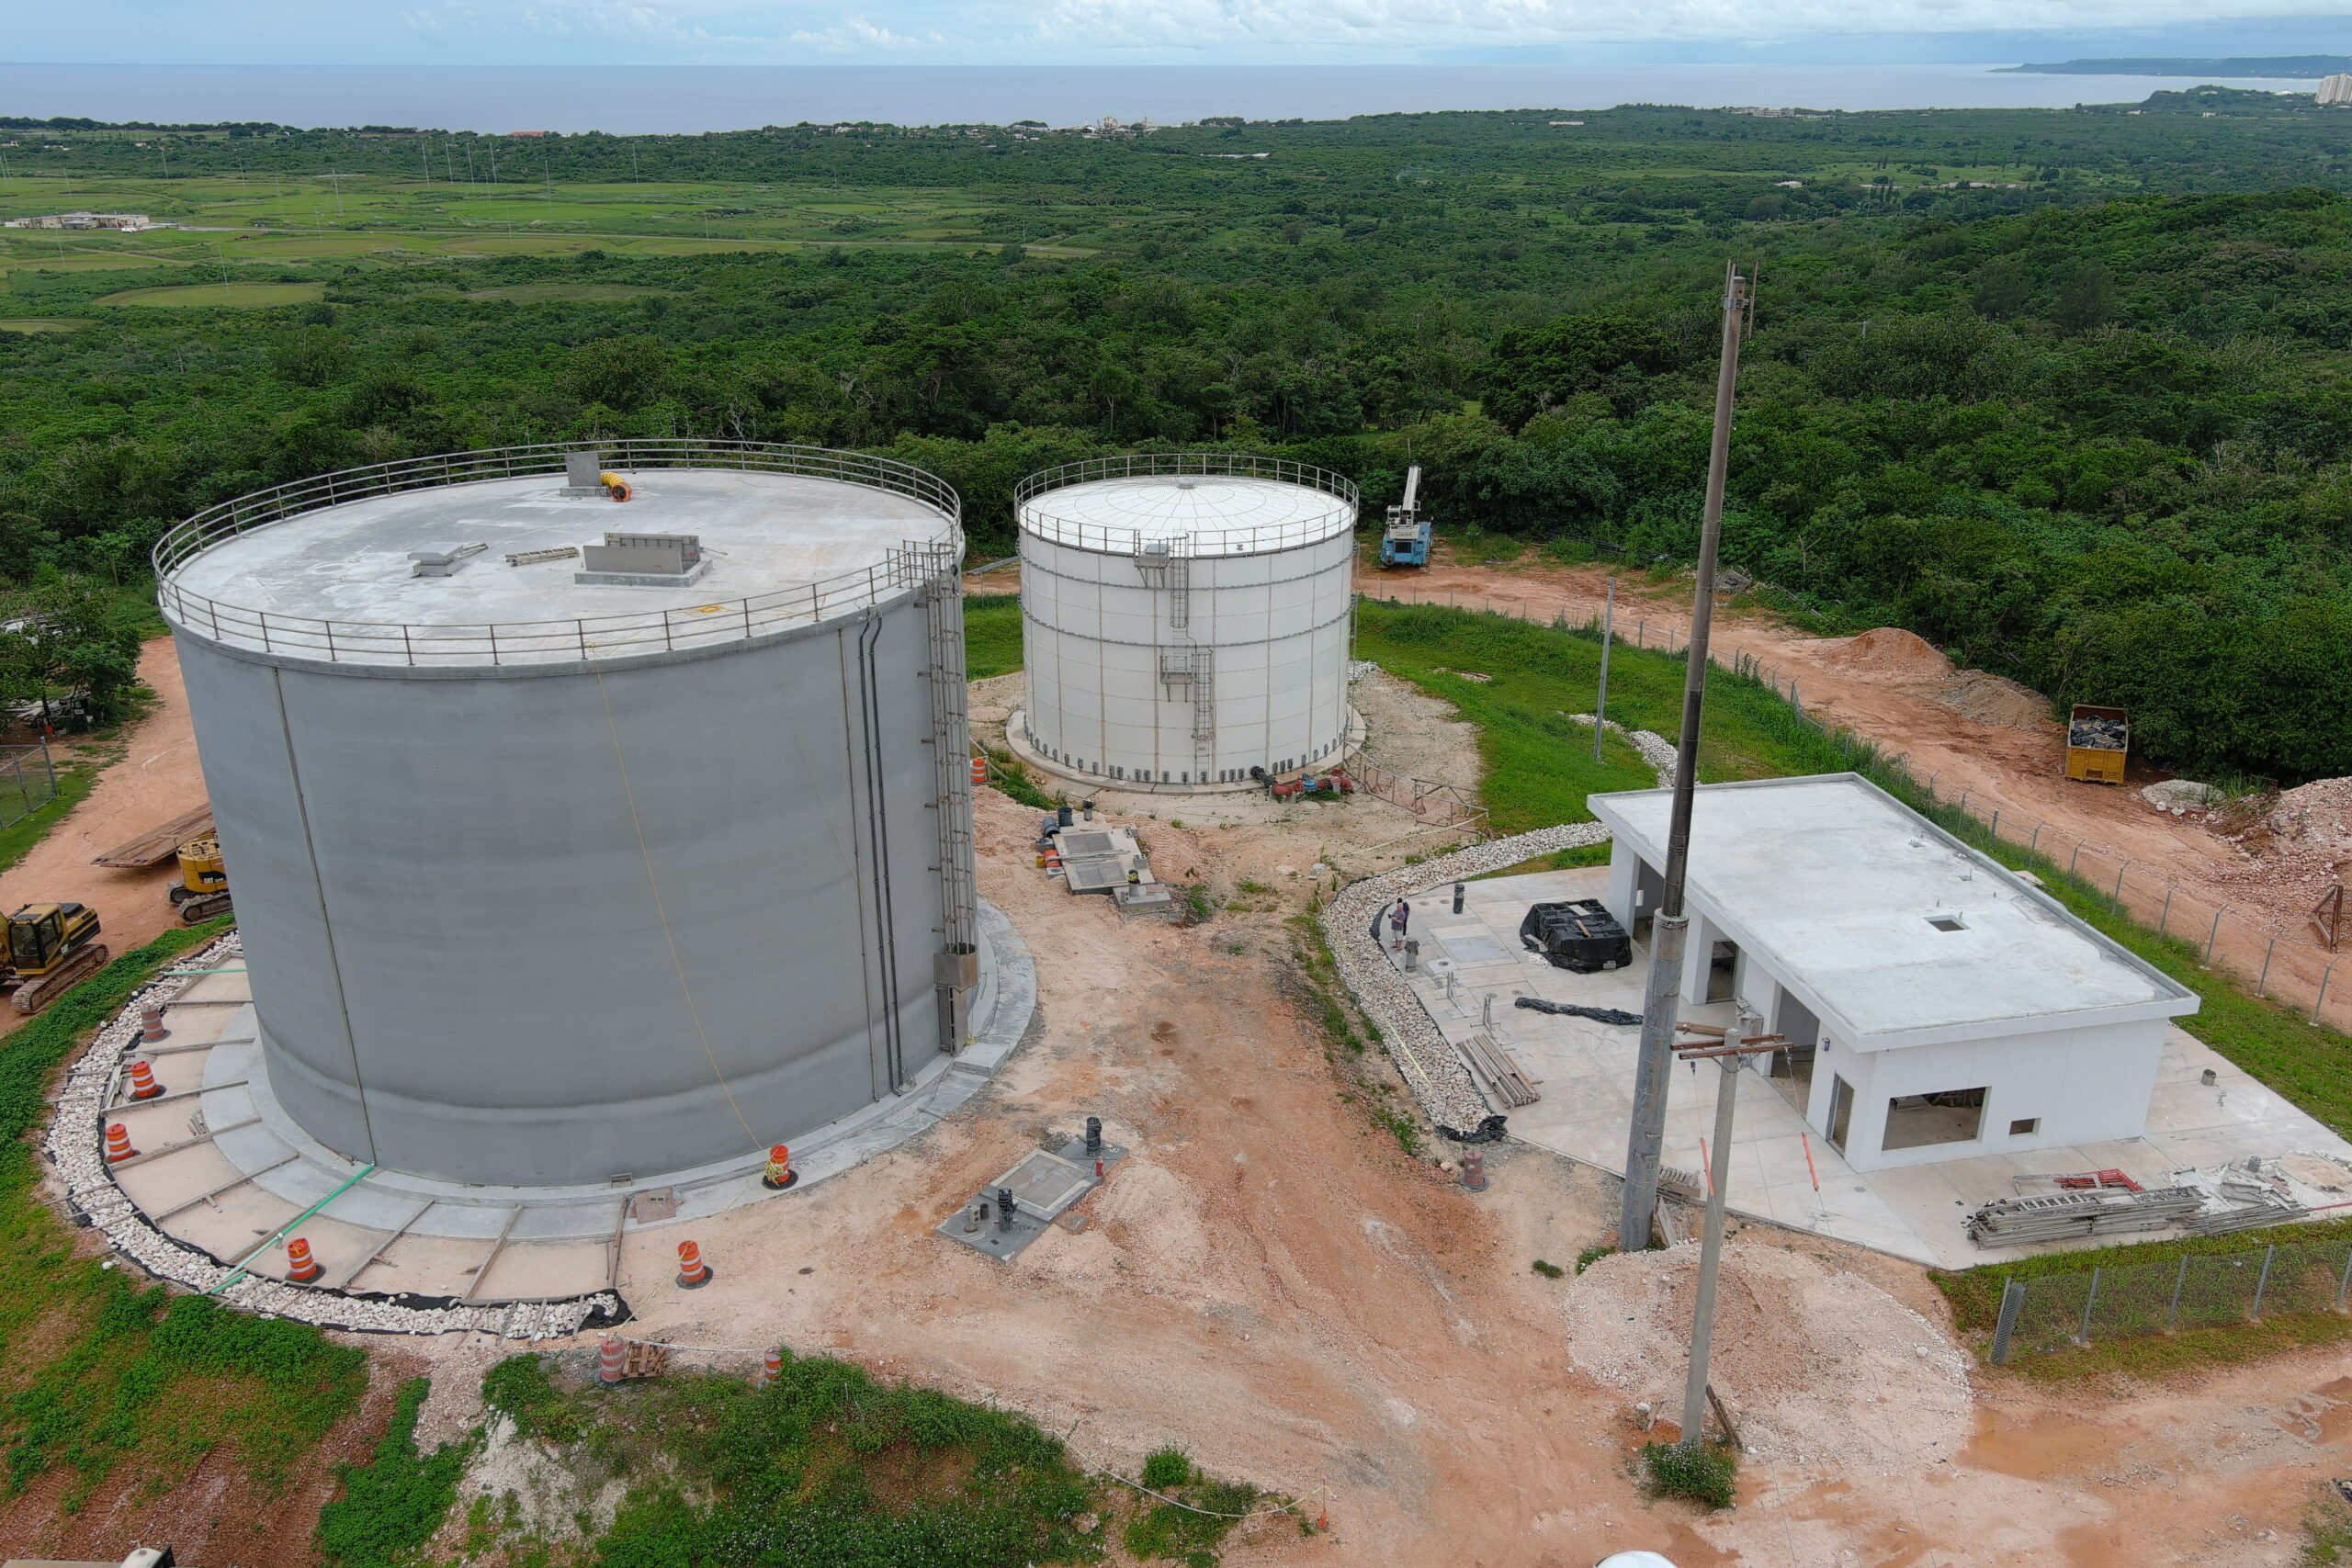 Construct Three Central Guam One Million Gallon Water Reservoirs